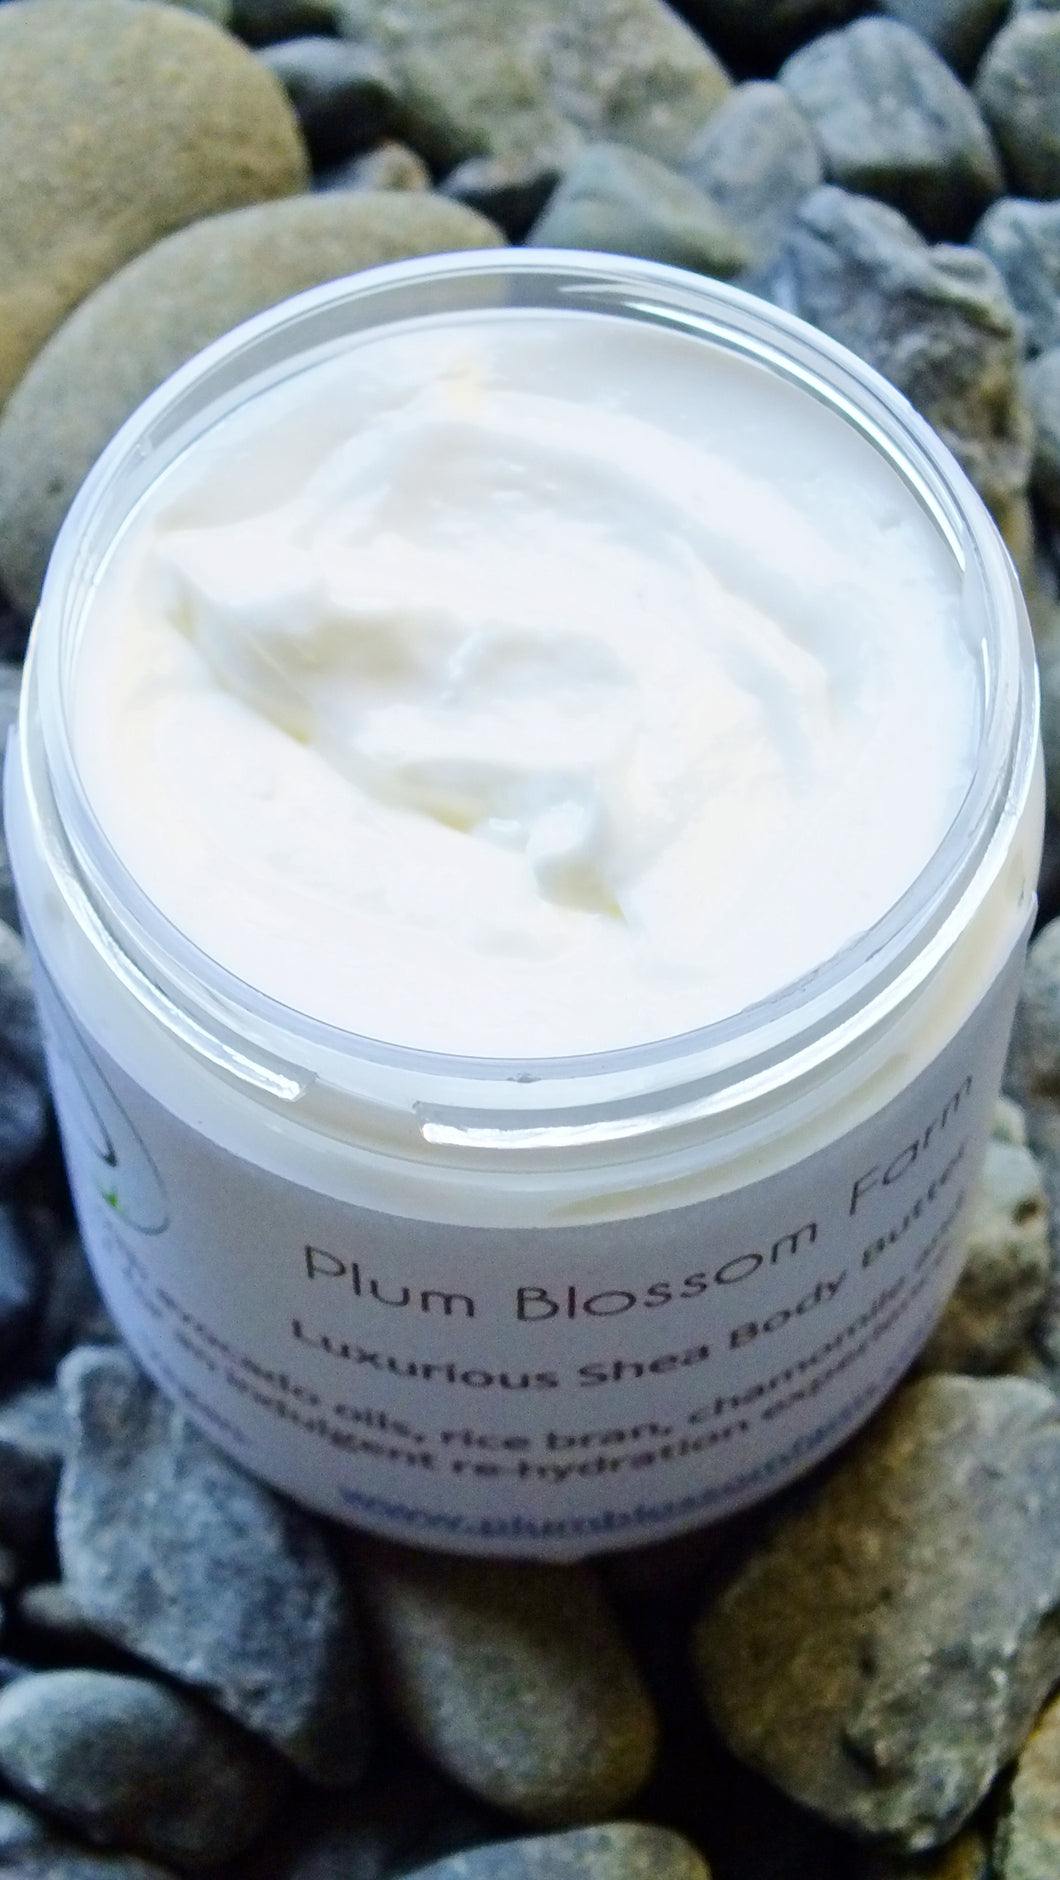 Plum Blossom Farm: Shea Body Butter